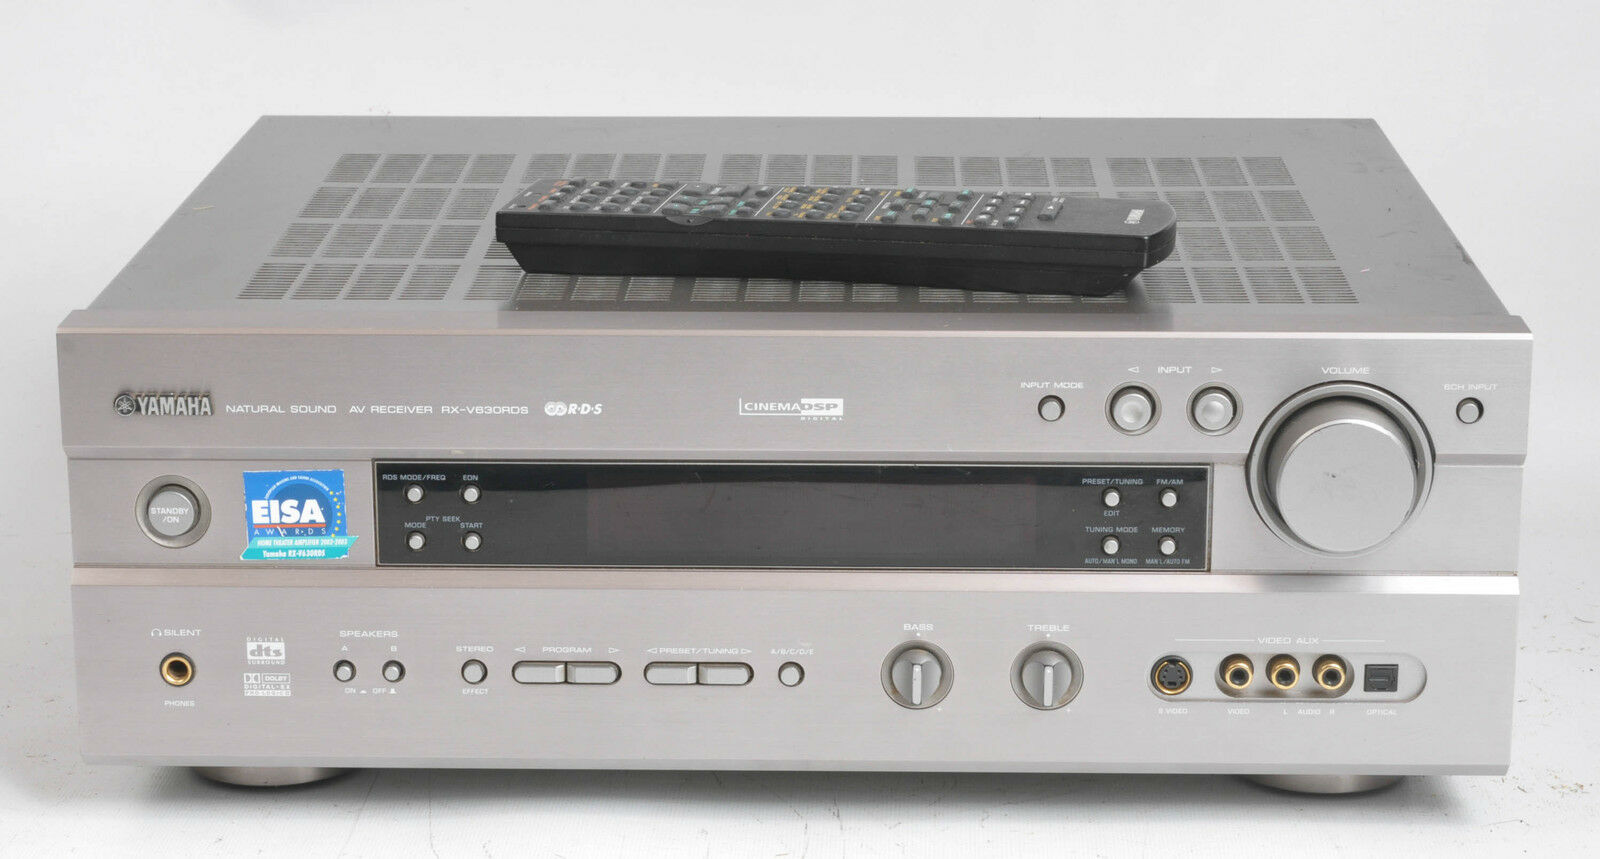 Yamaha rx v630rds av surround receiver 6 1 channel home for Yamaha amplifier receiver